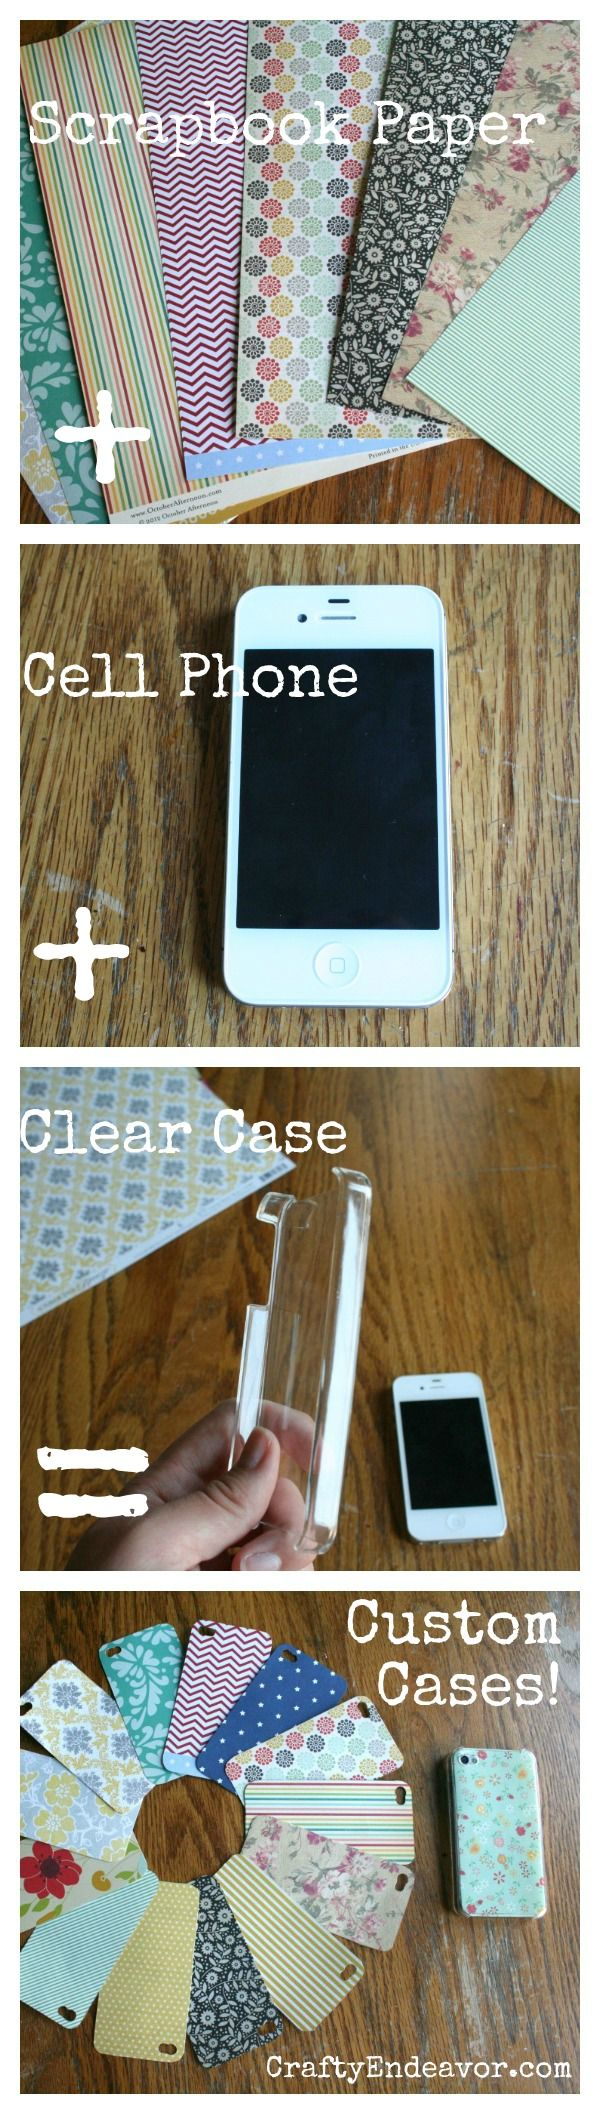 Very clever.. I'm so doing this!!: Cell Phones Cases, Iphone Cases, Diy Crafts, Cellphone, Cute Ideas, Ipod Cases, Scrapbook Paper, Cell Phones Covers, Smart Ideas